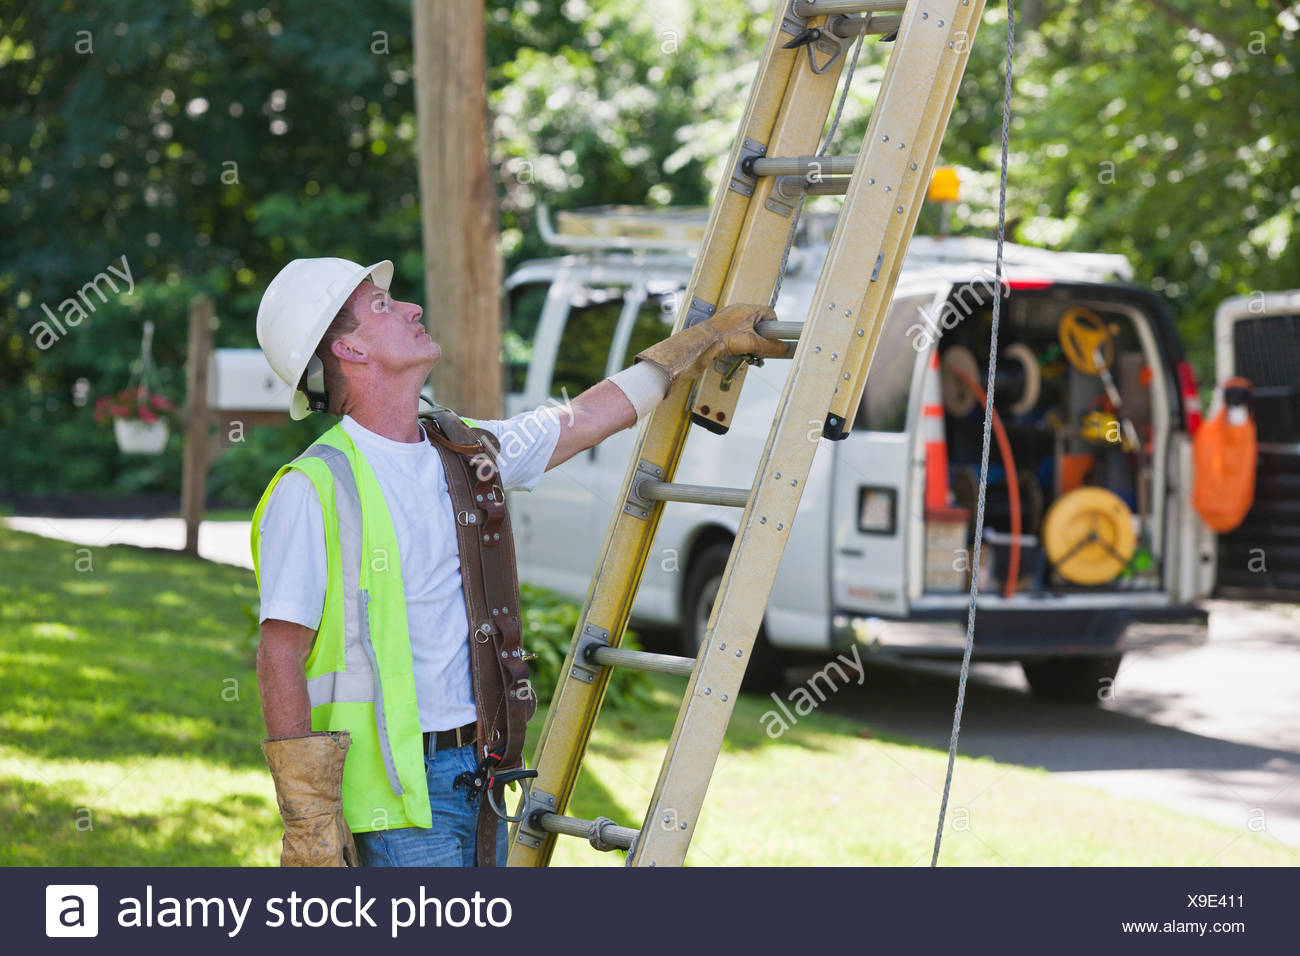 Communications worker preparing to climb ladder for overhead wiring - Stock Image